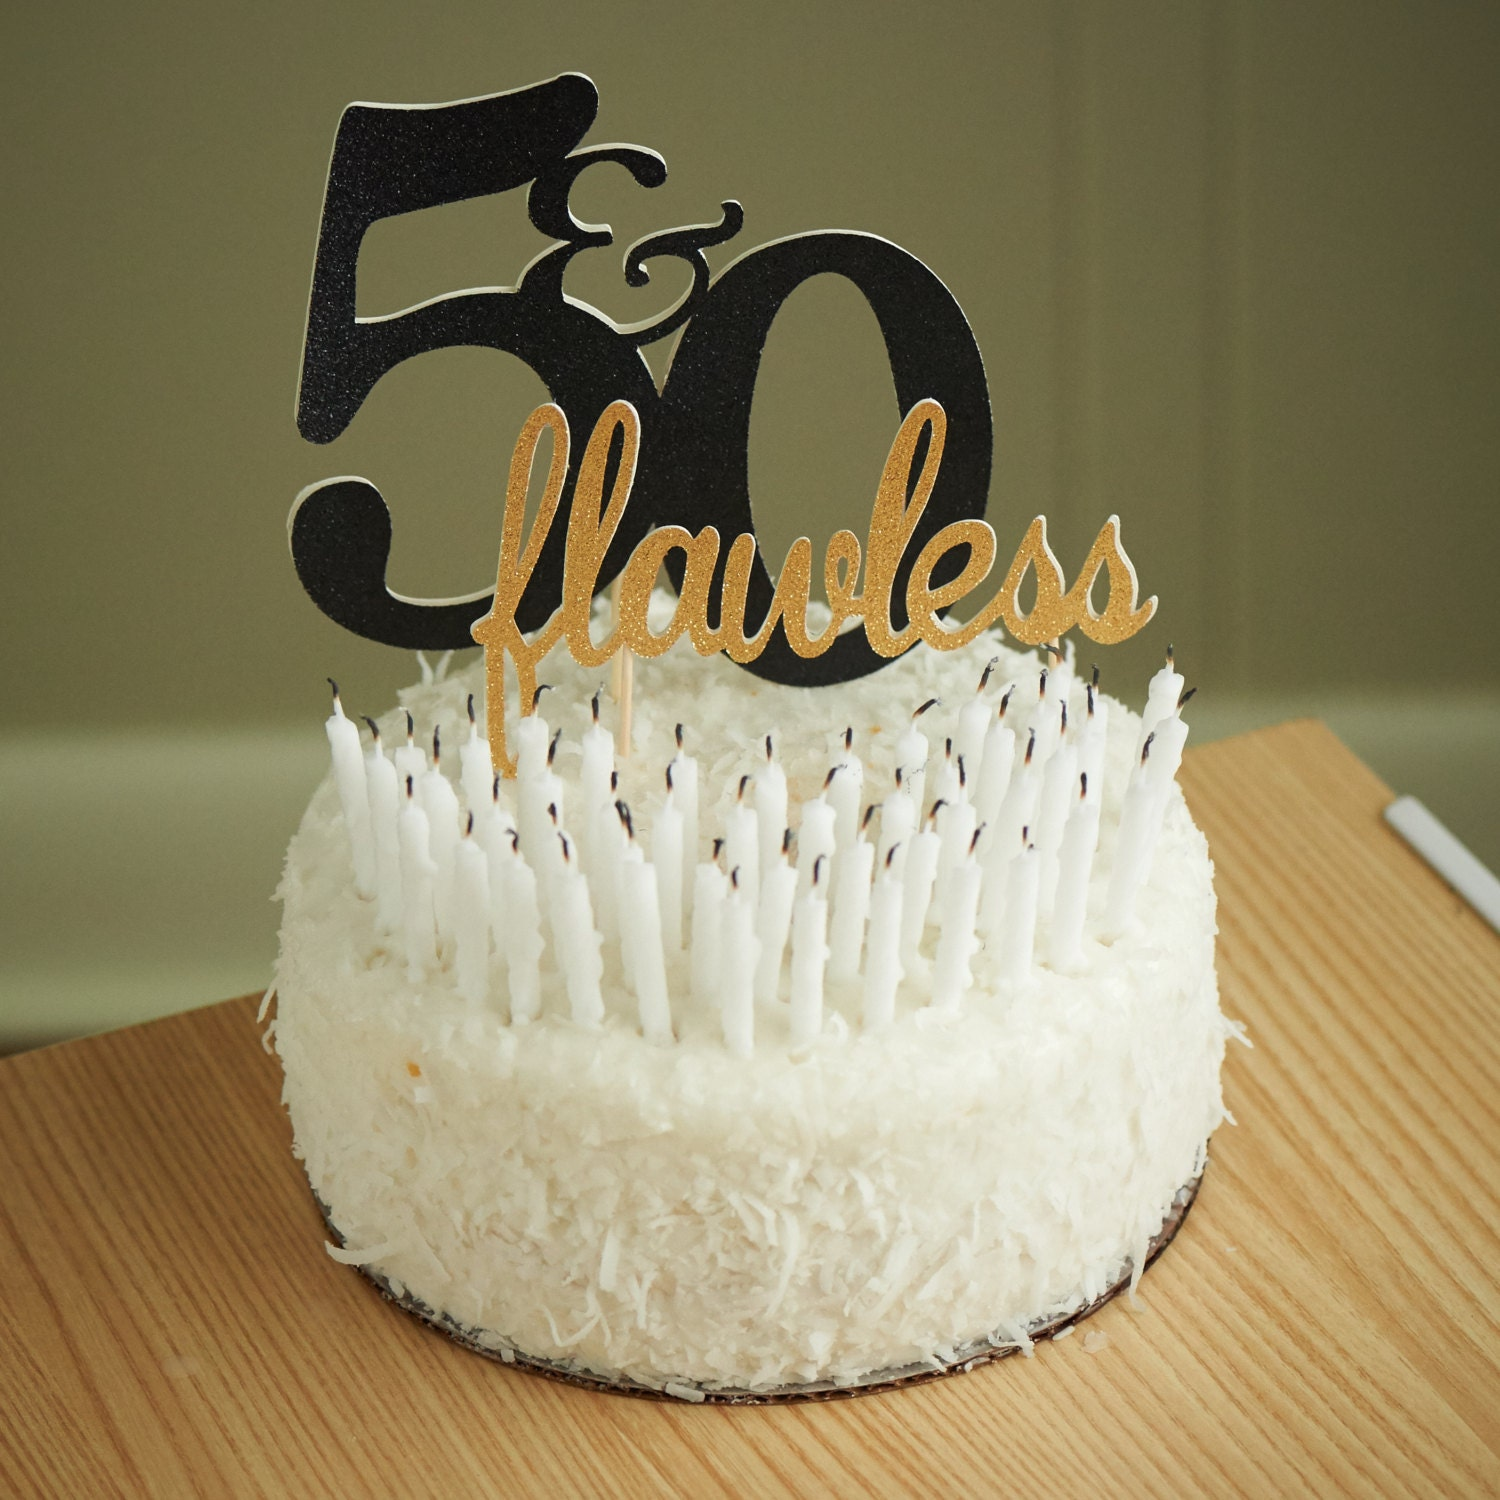 Ideas For Birthday Cake Toppers : 50th Birthday Cake Topper. Handcrafted in 3-5 Business Days.